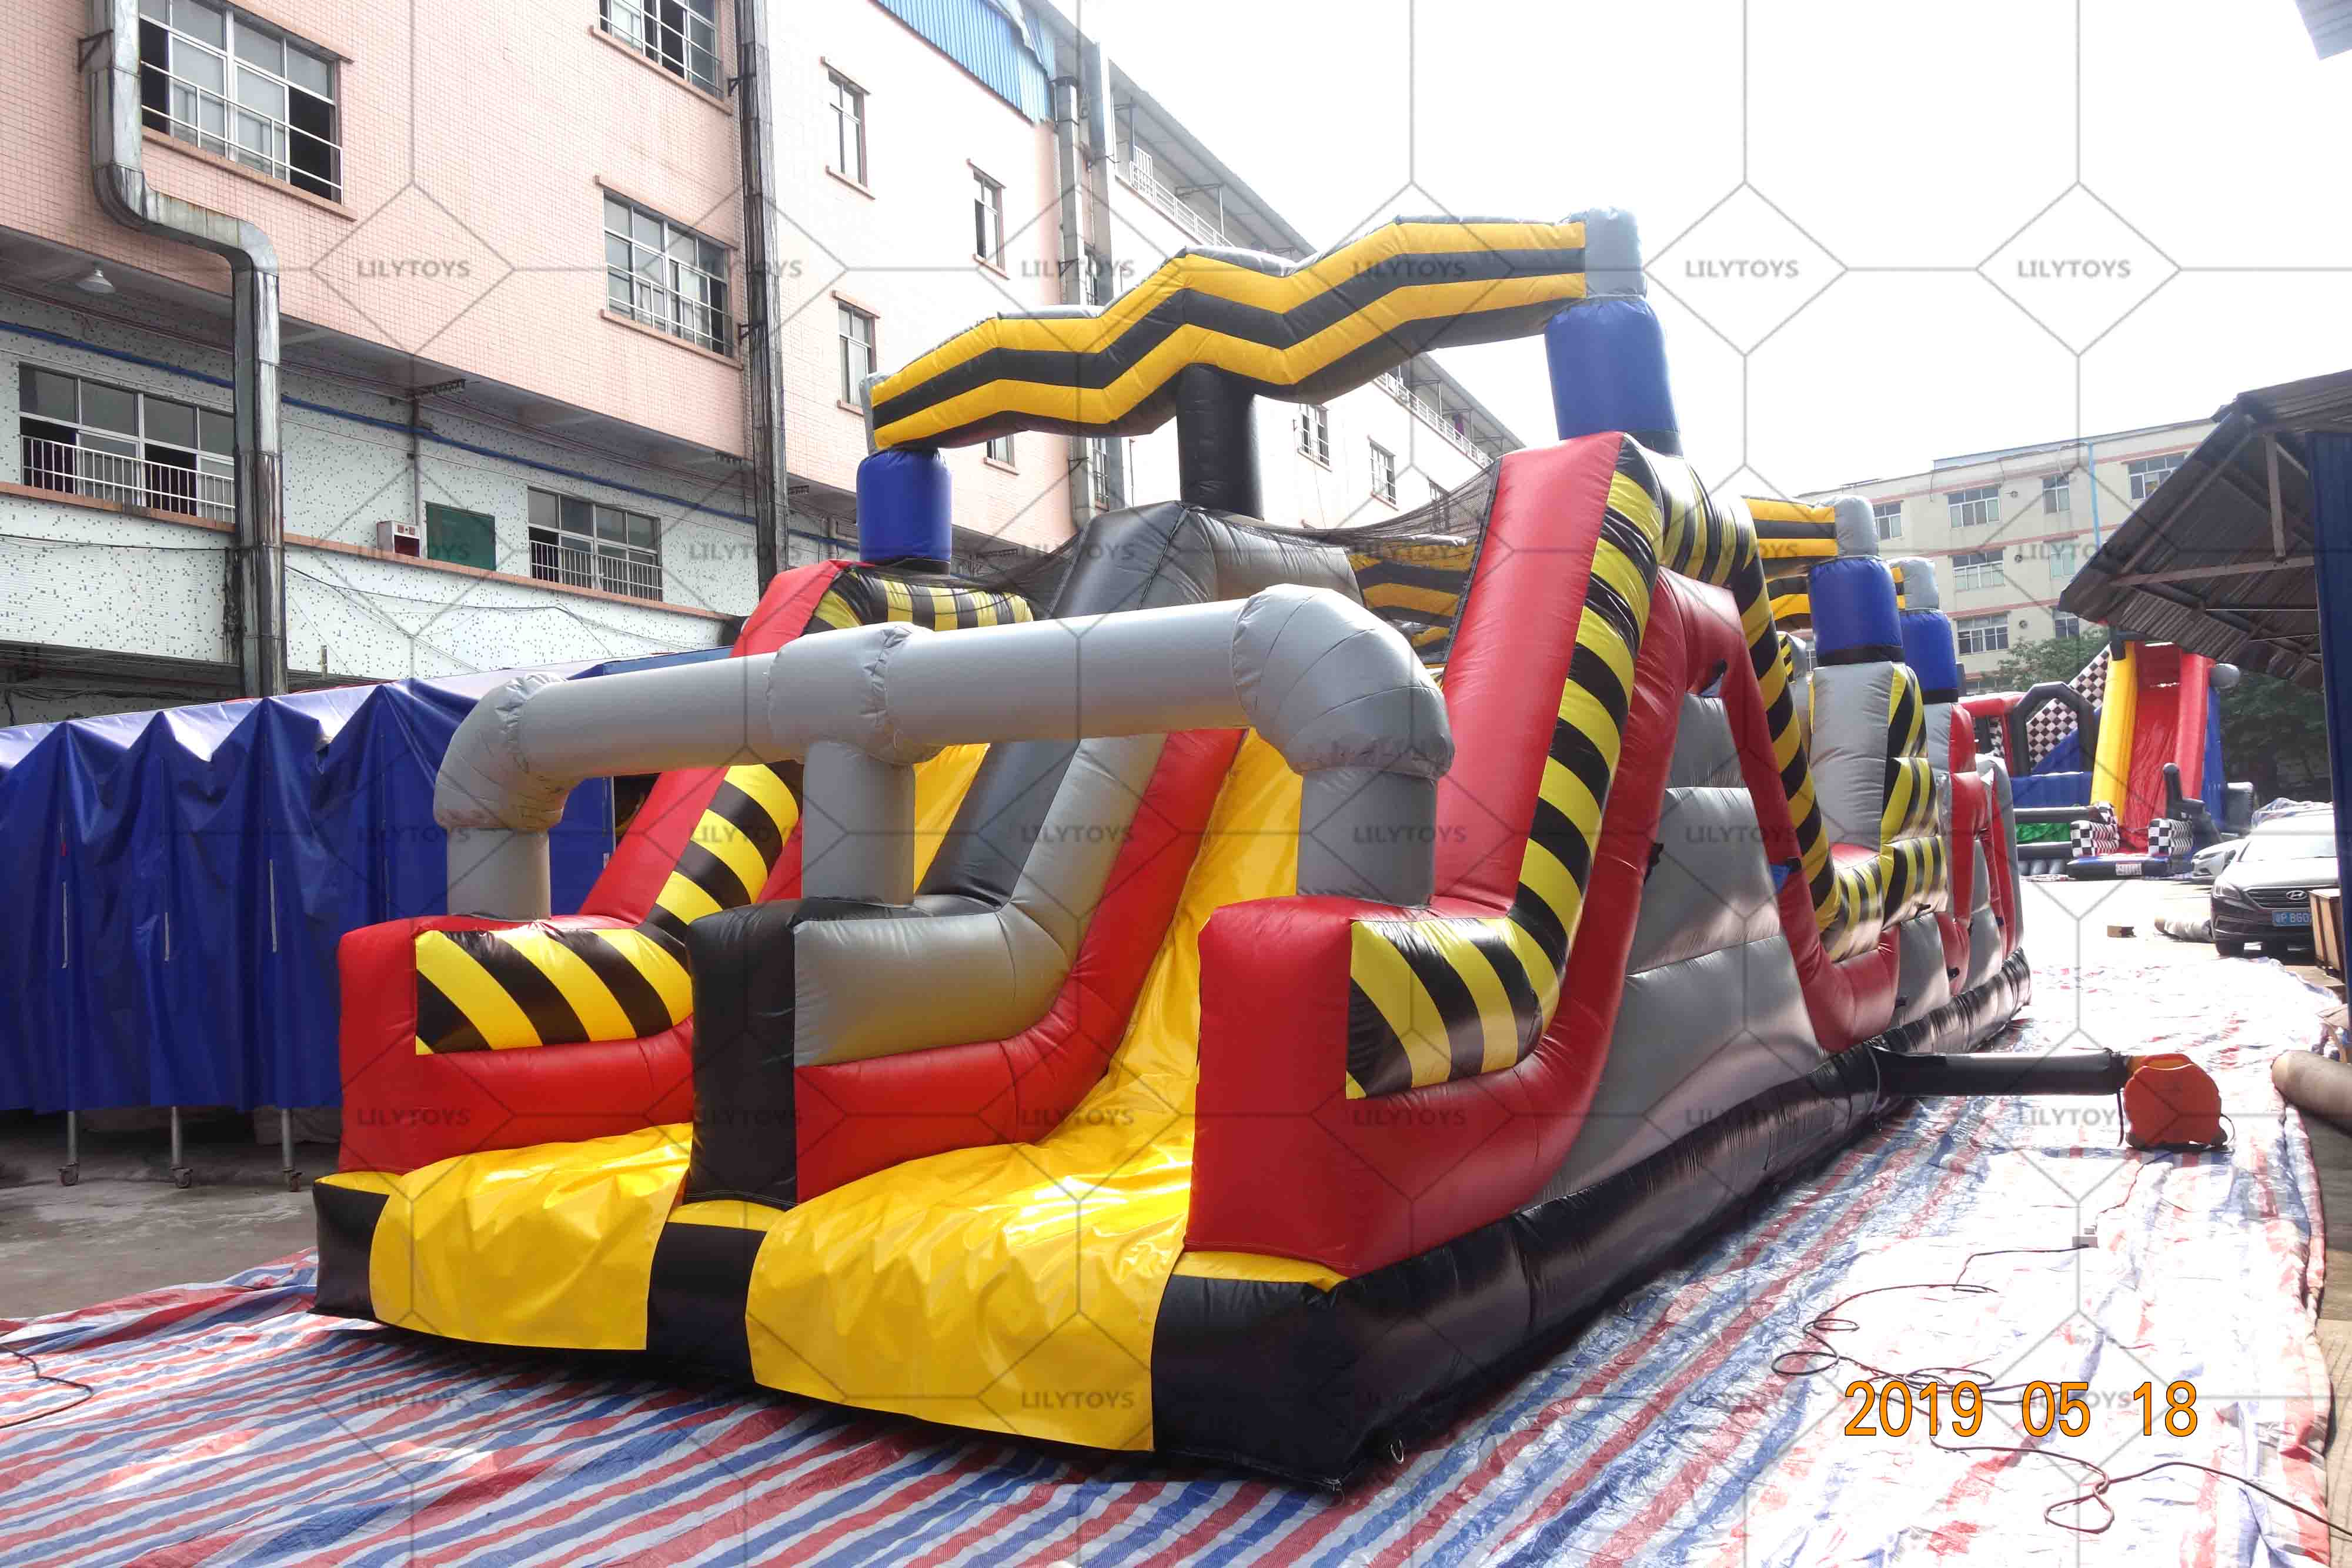 Race inflatable double obstale course